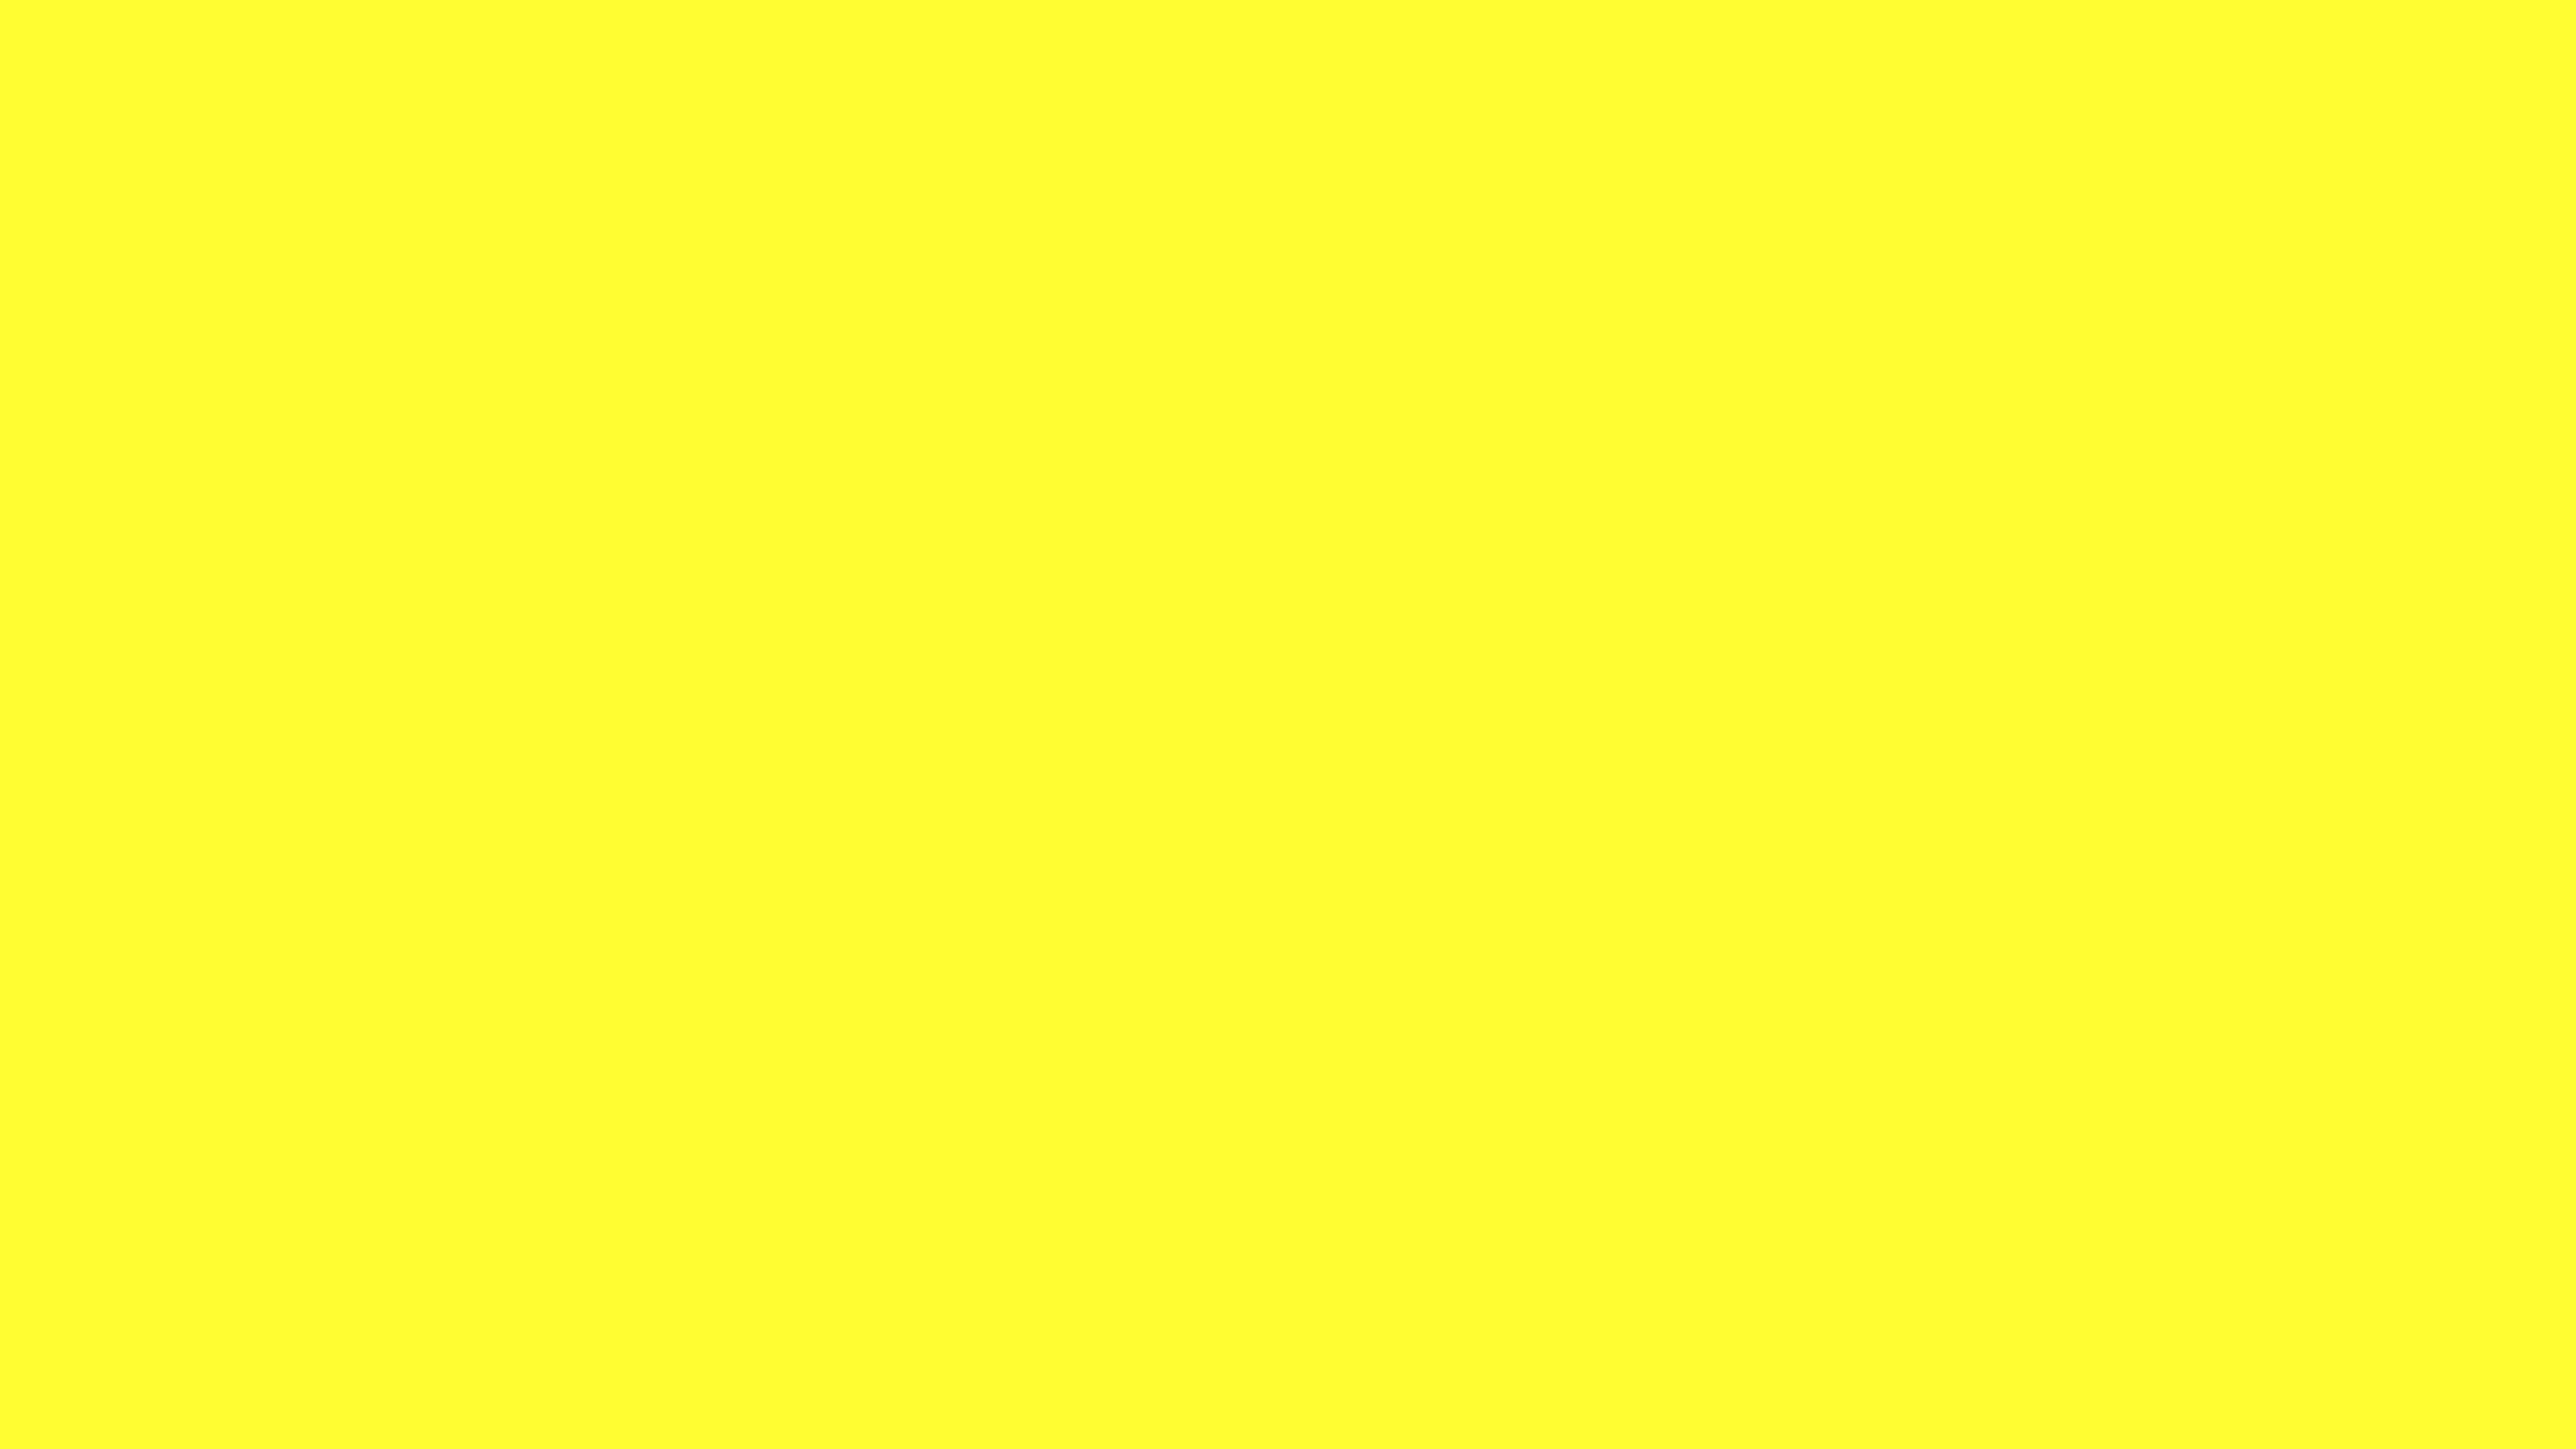 5120x2880 Yellow RYB Solid Color Background